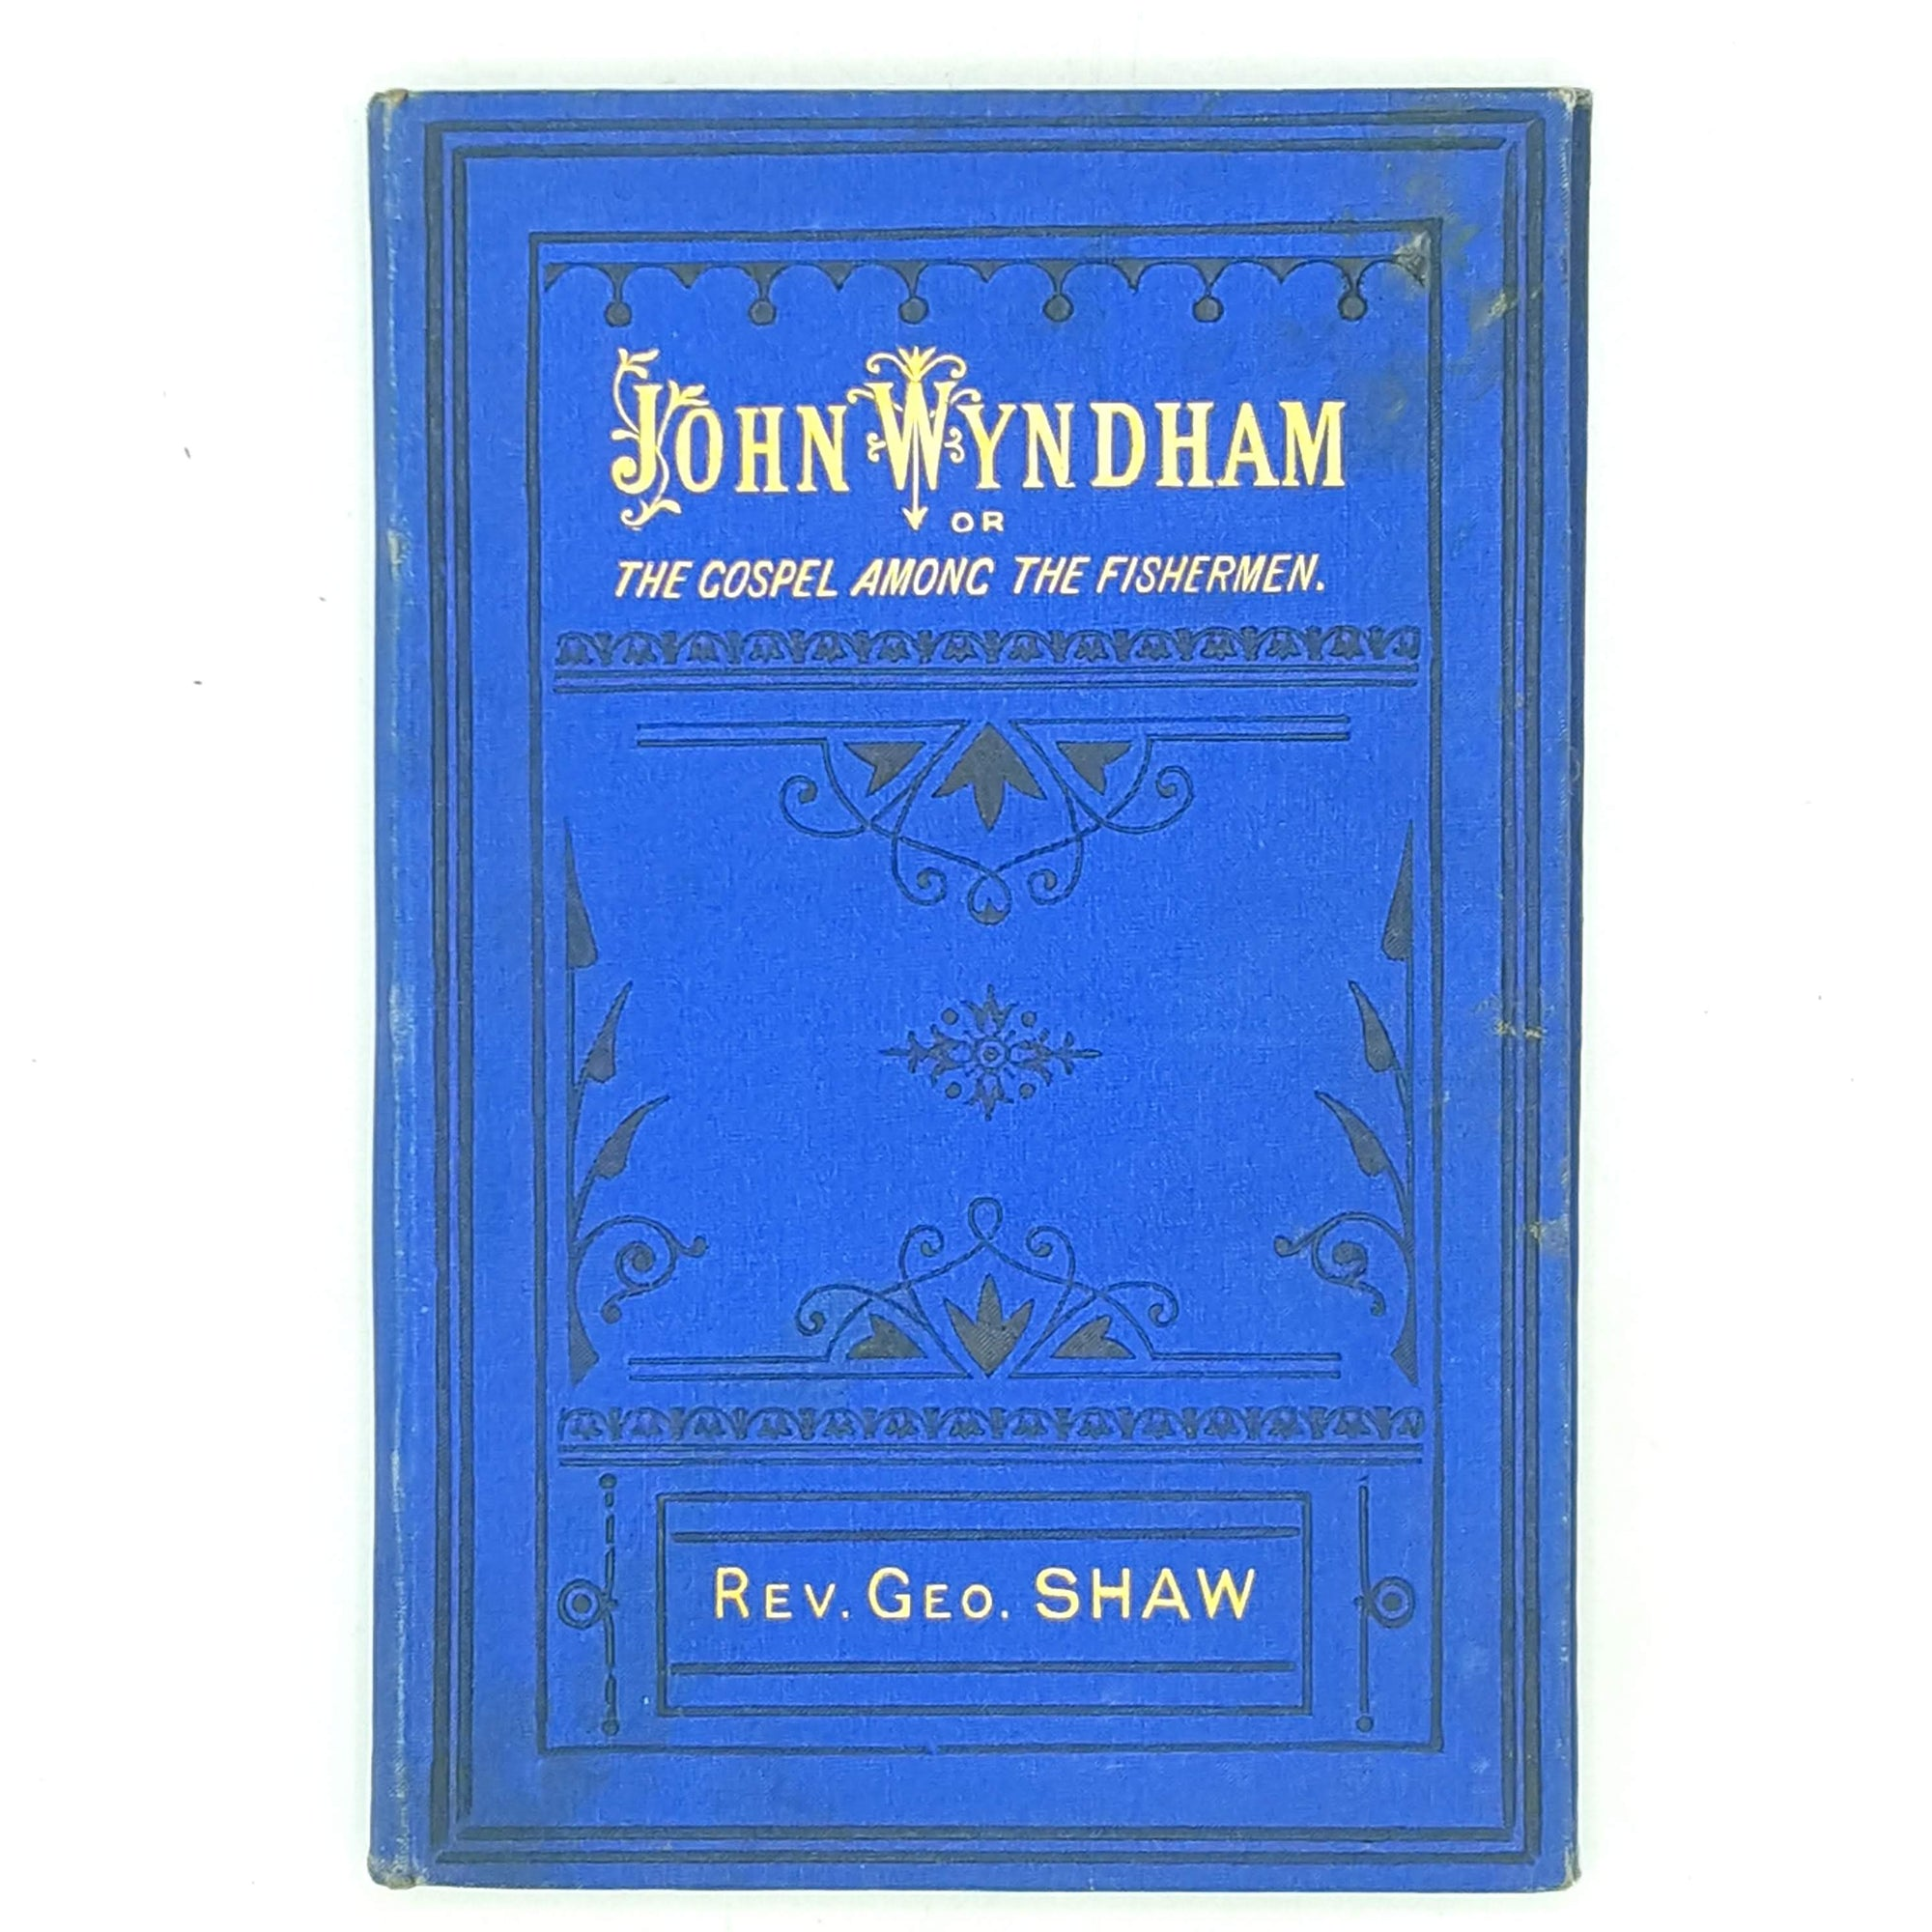 John Wyndham or The Gospel Among the Fishermen by Rev. George Shaw